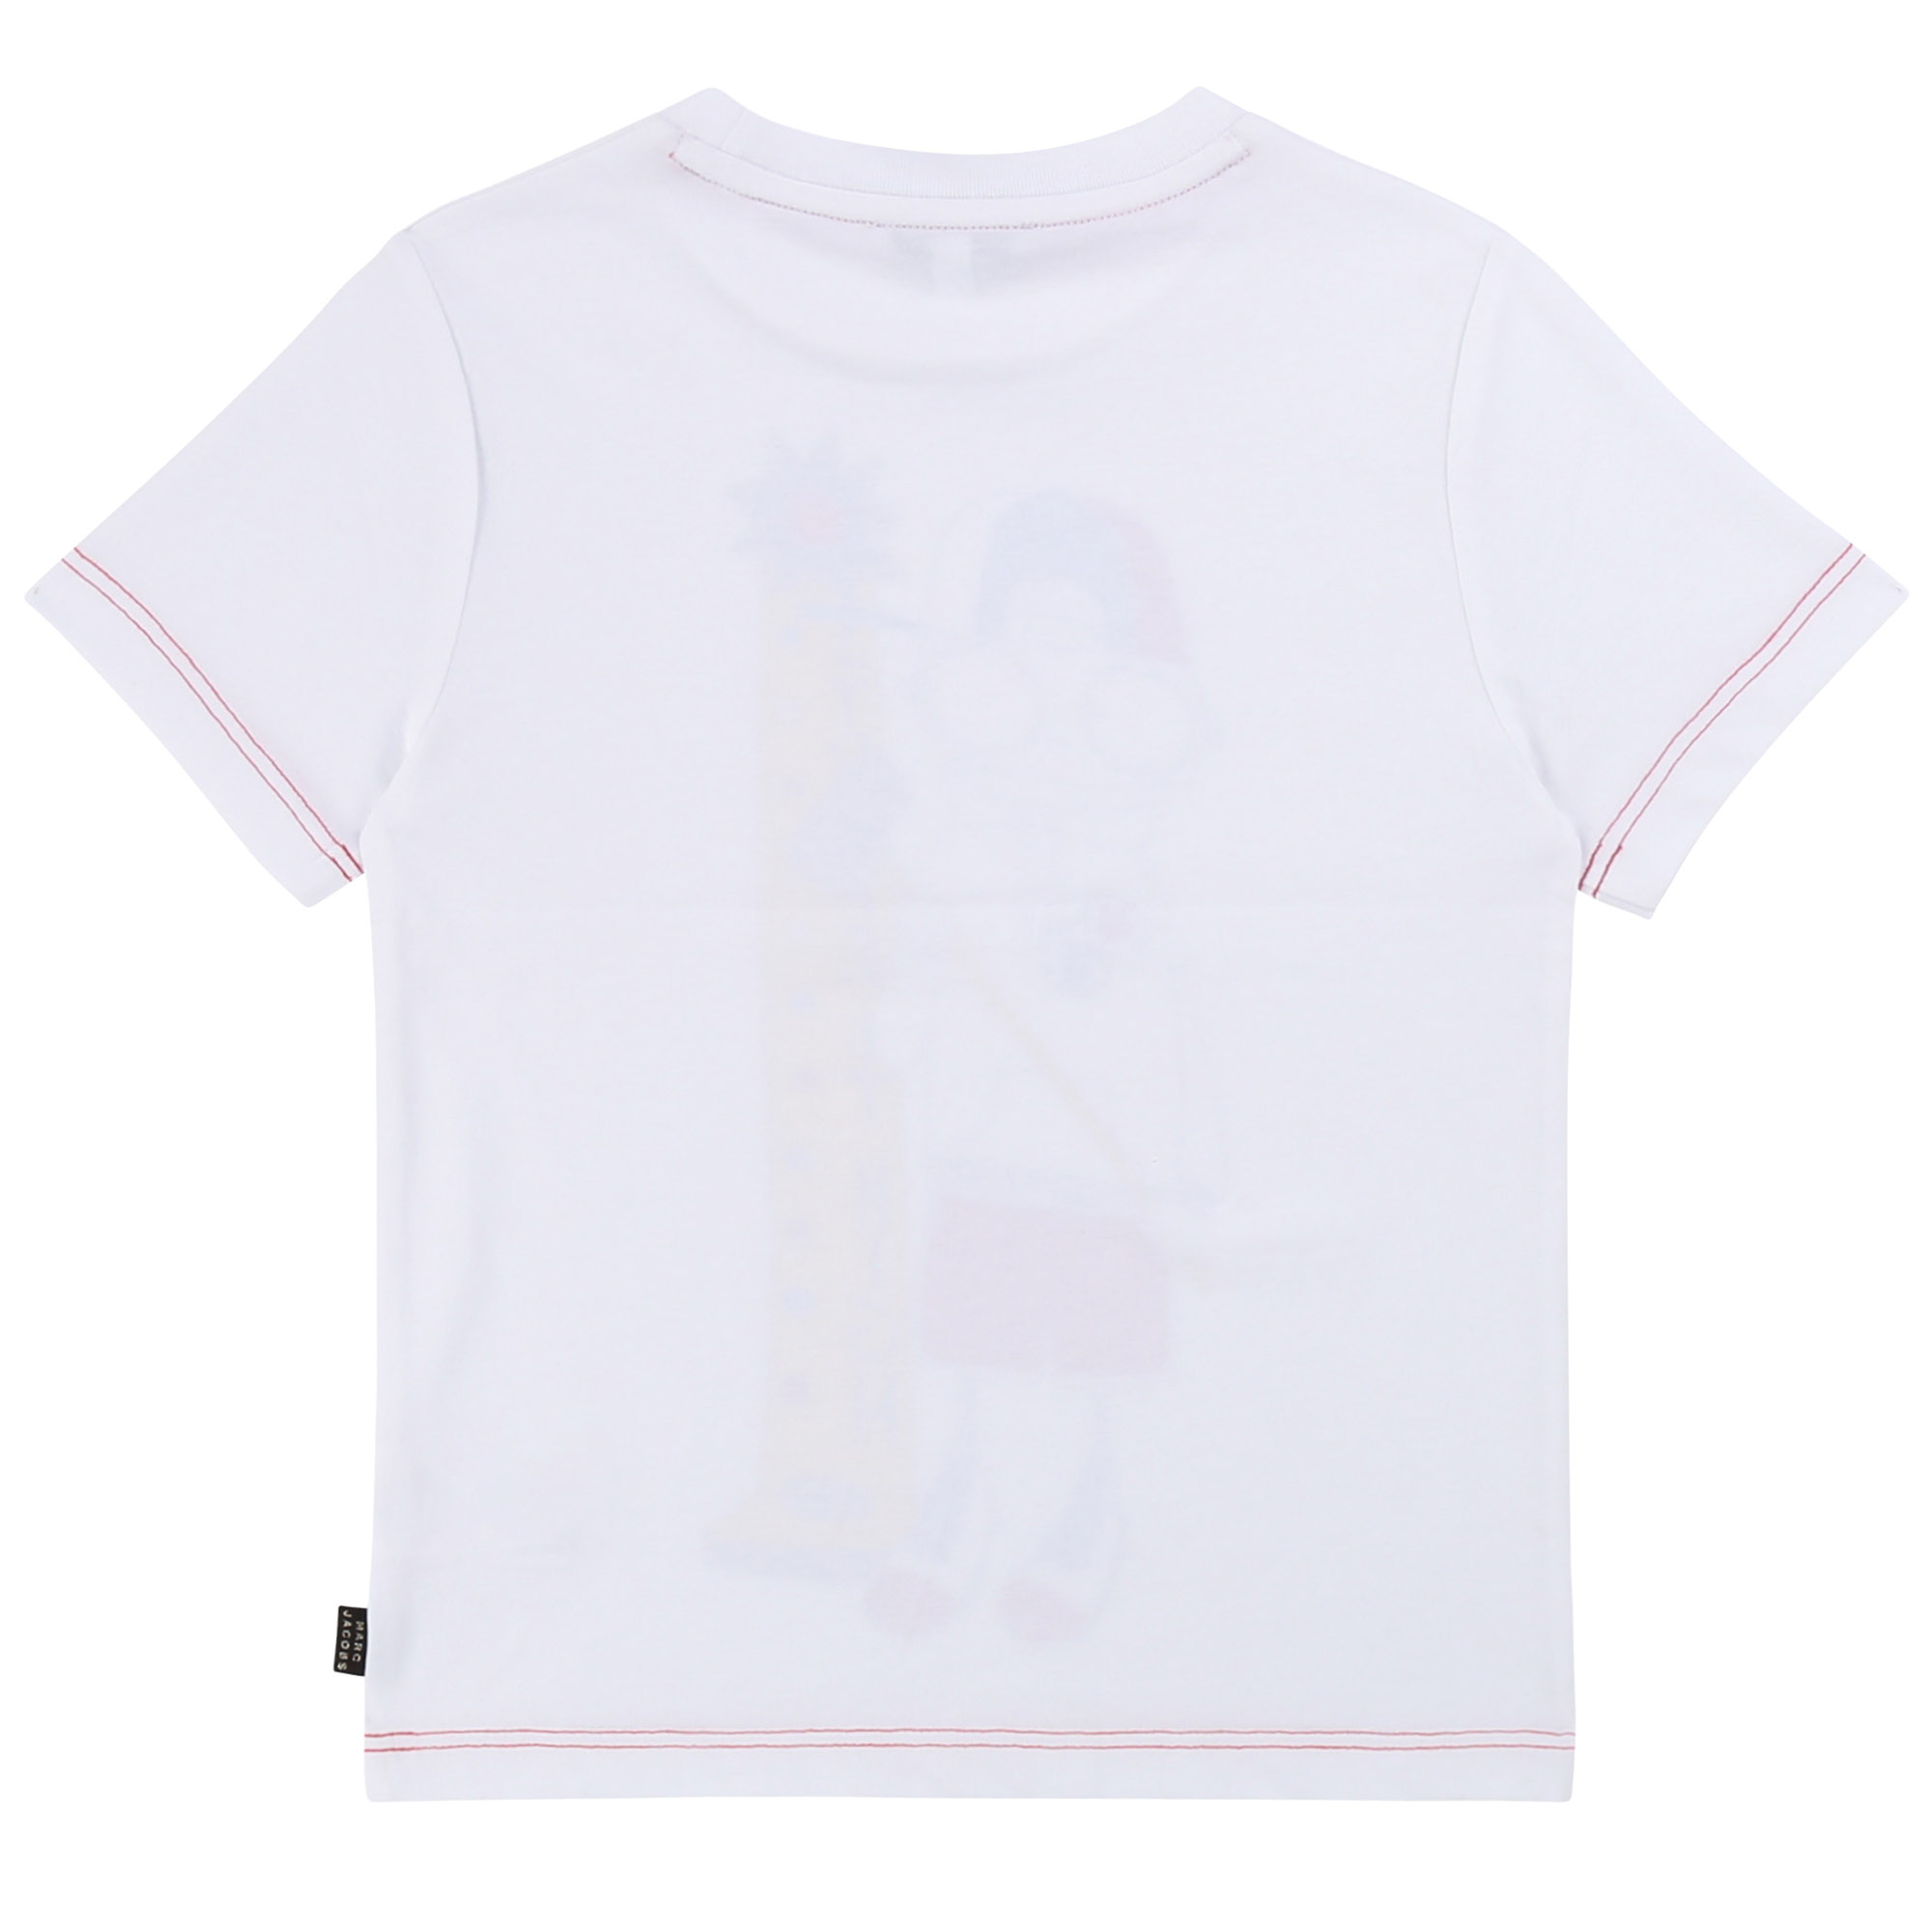 T-shirt a maniche corte THE MARC JACOBS Per RAGAZZO